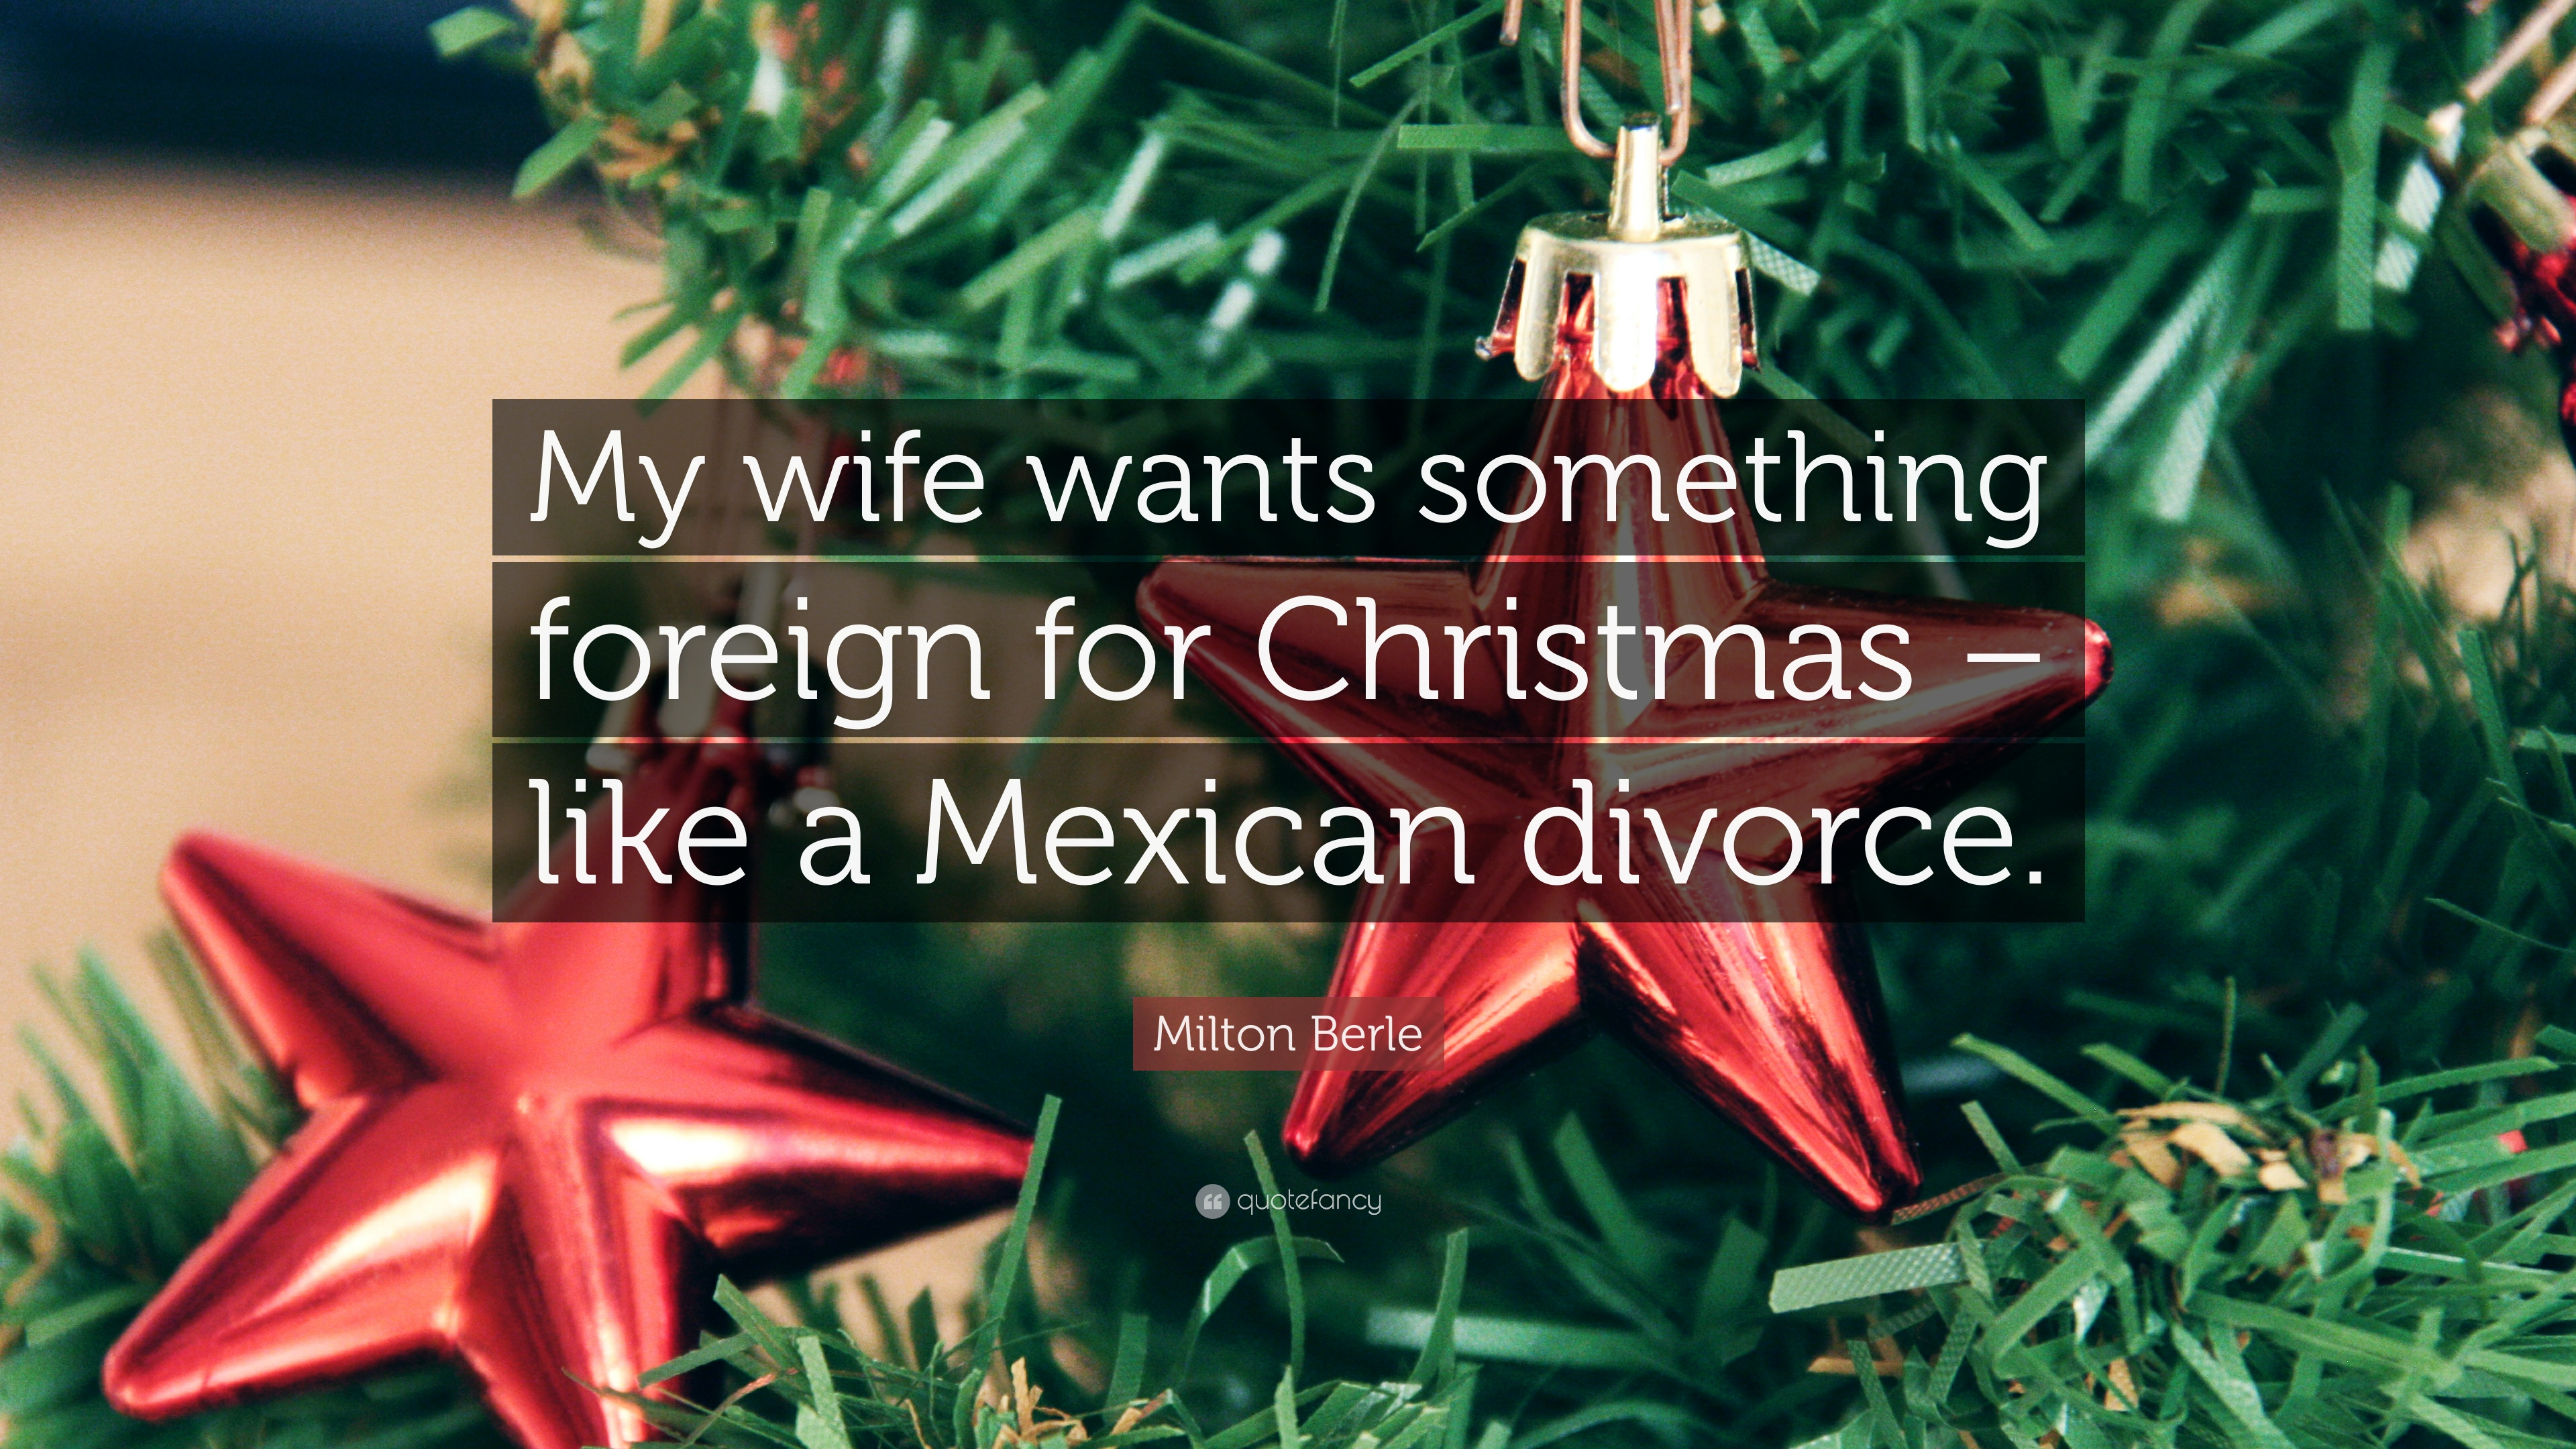 milton berle quote my wife wants something foreign for christmas like a mexican